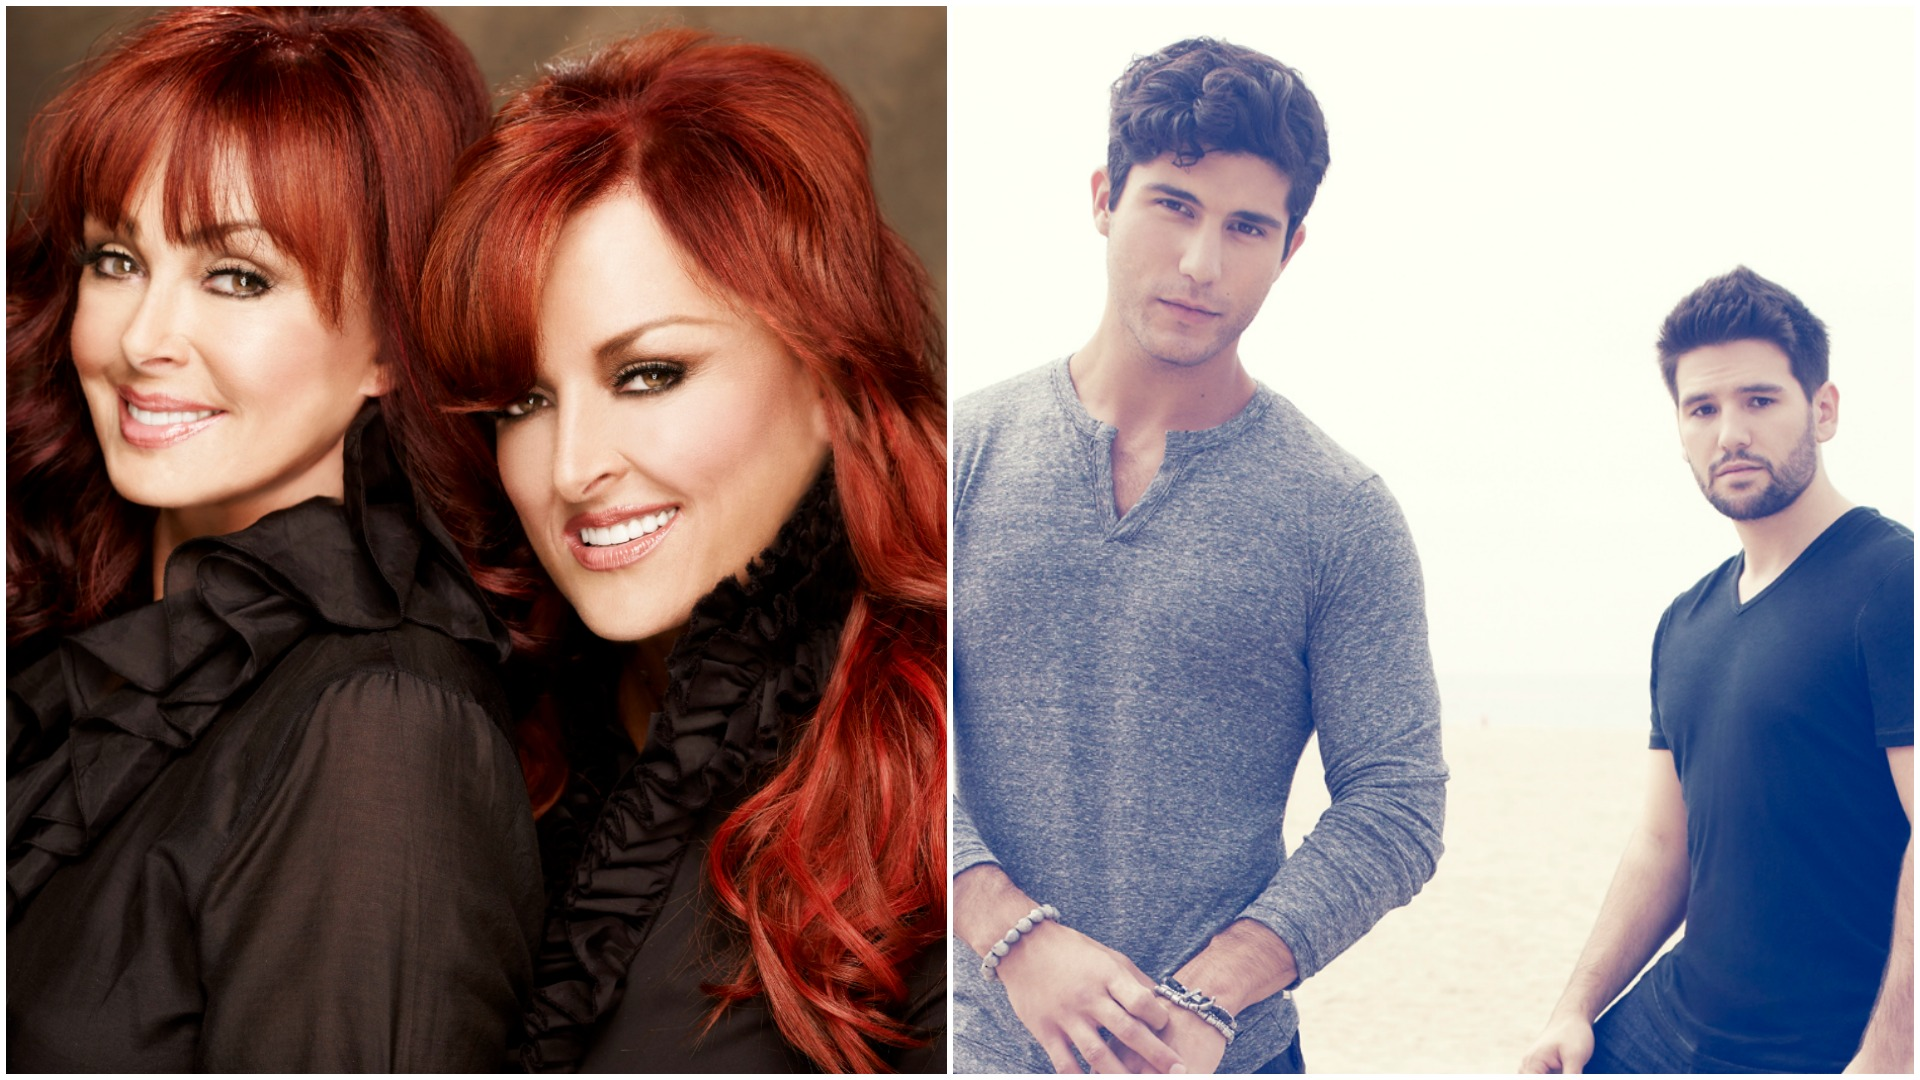 If you like The Judds, you'll love Dan + Shay.